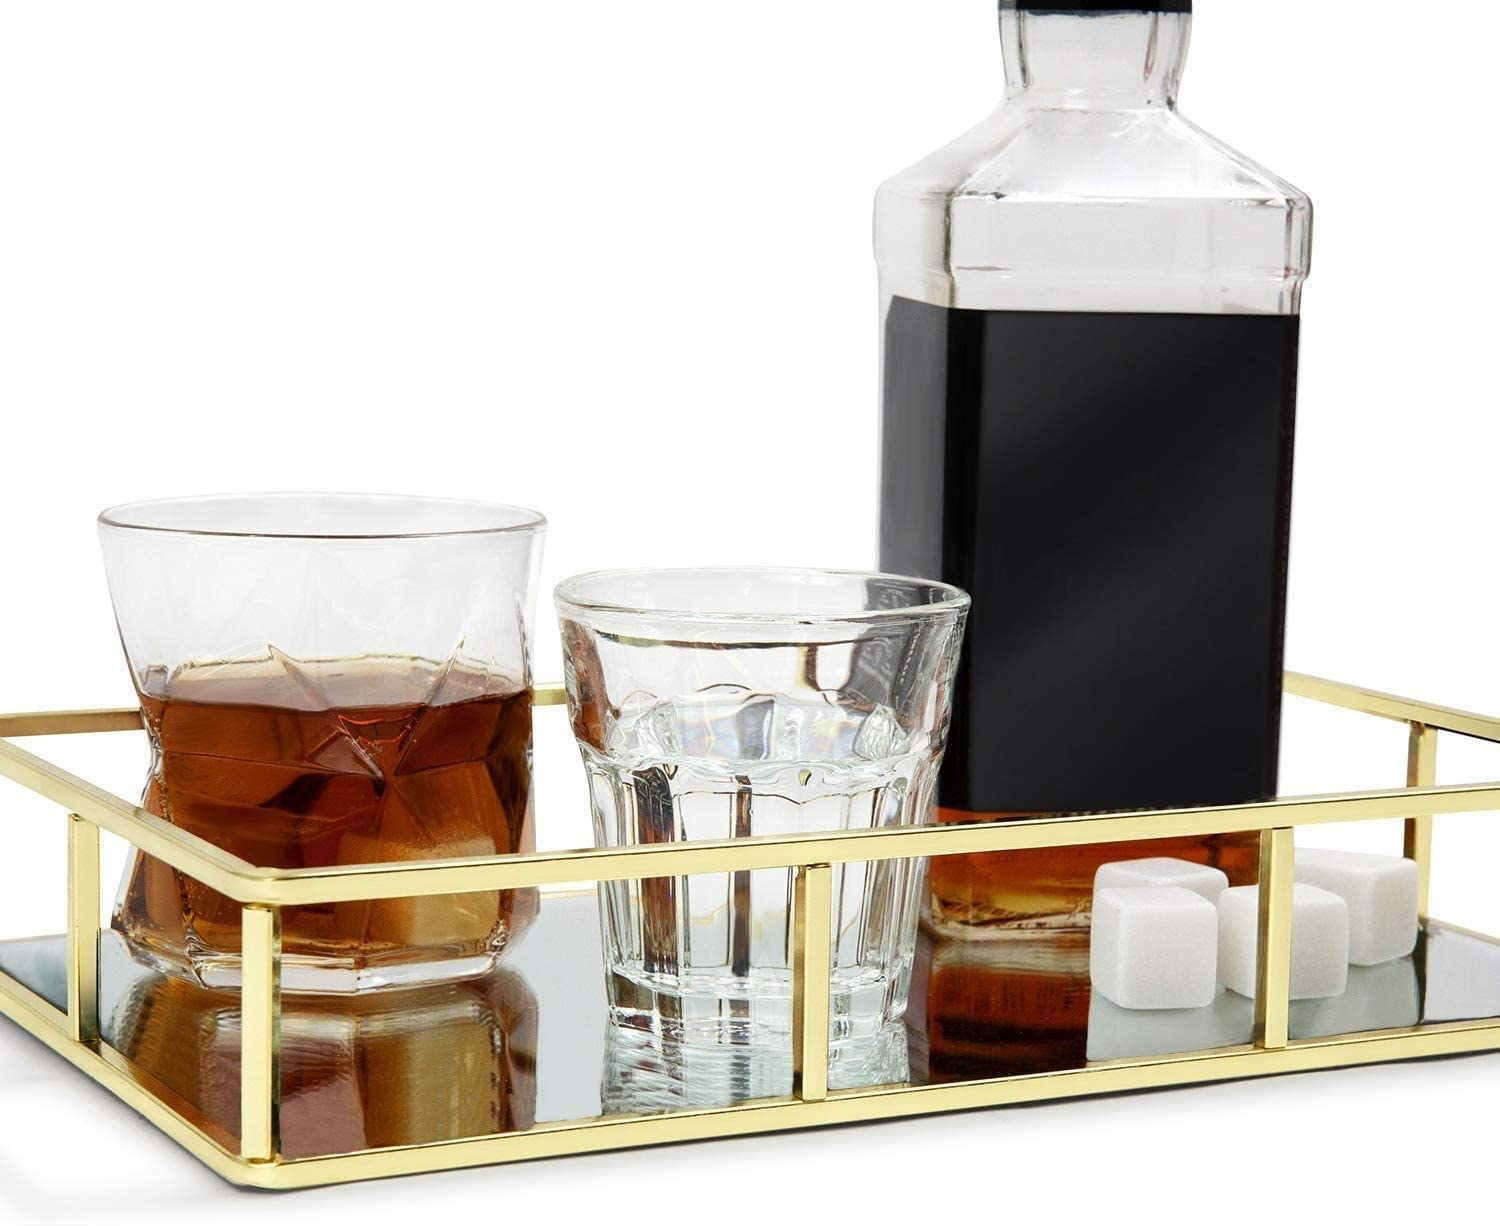 The vanity tray with glassware and a bottle of alcohol sitting on it